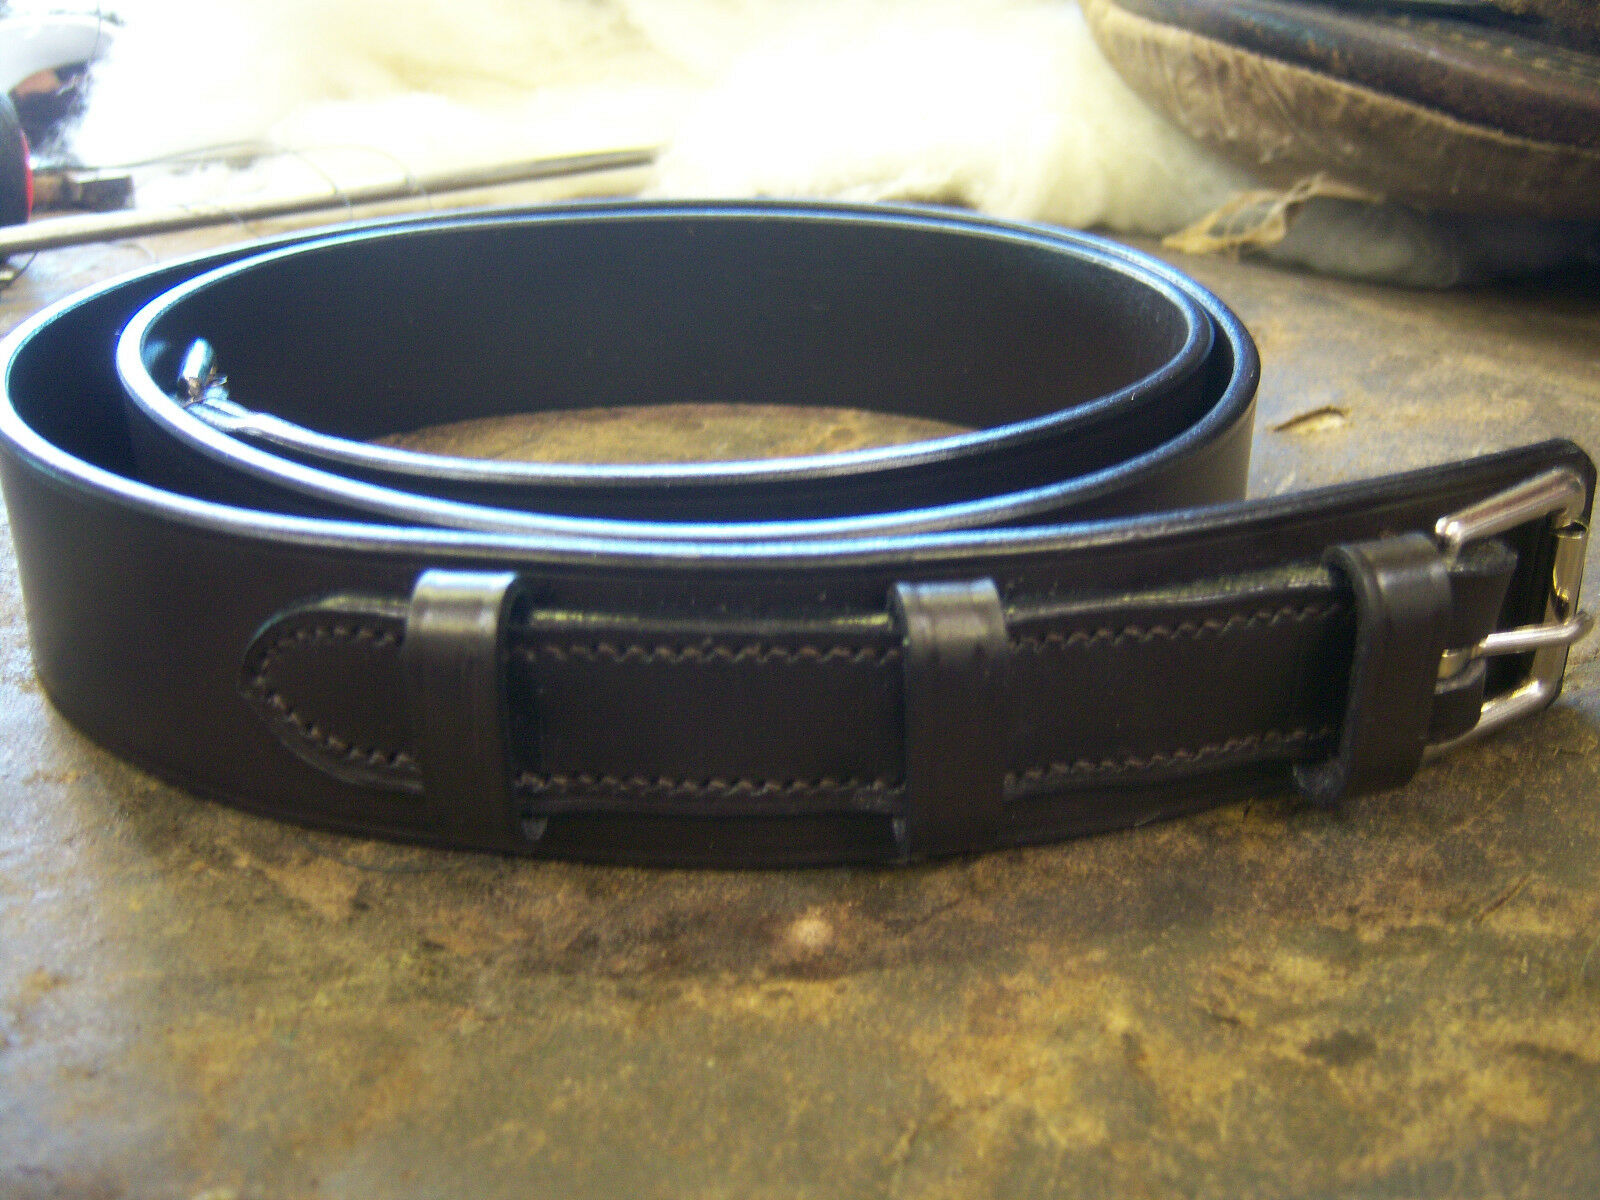 Leather  Balance Strap for Side Saddle Sidesaddle Owen Mayhew Champion & Wilton  the lowest price